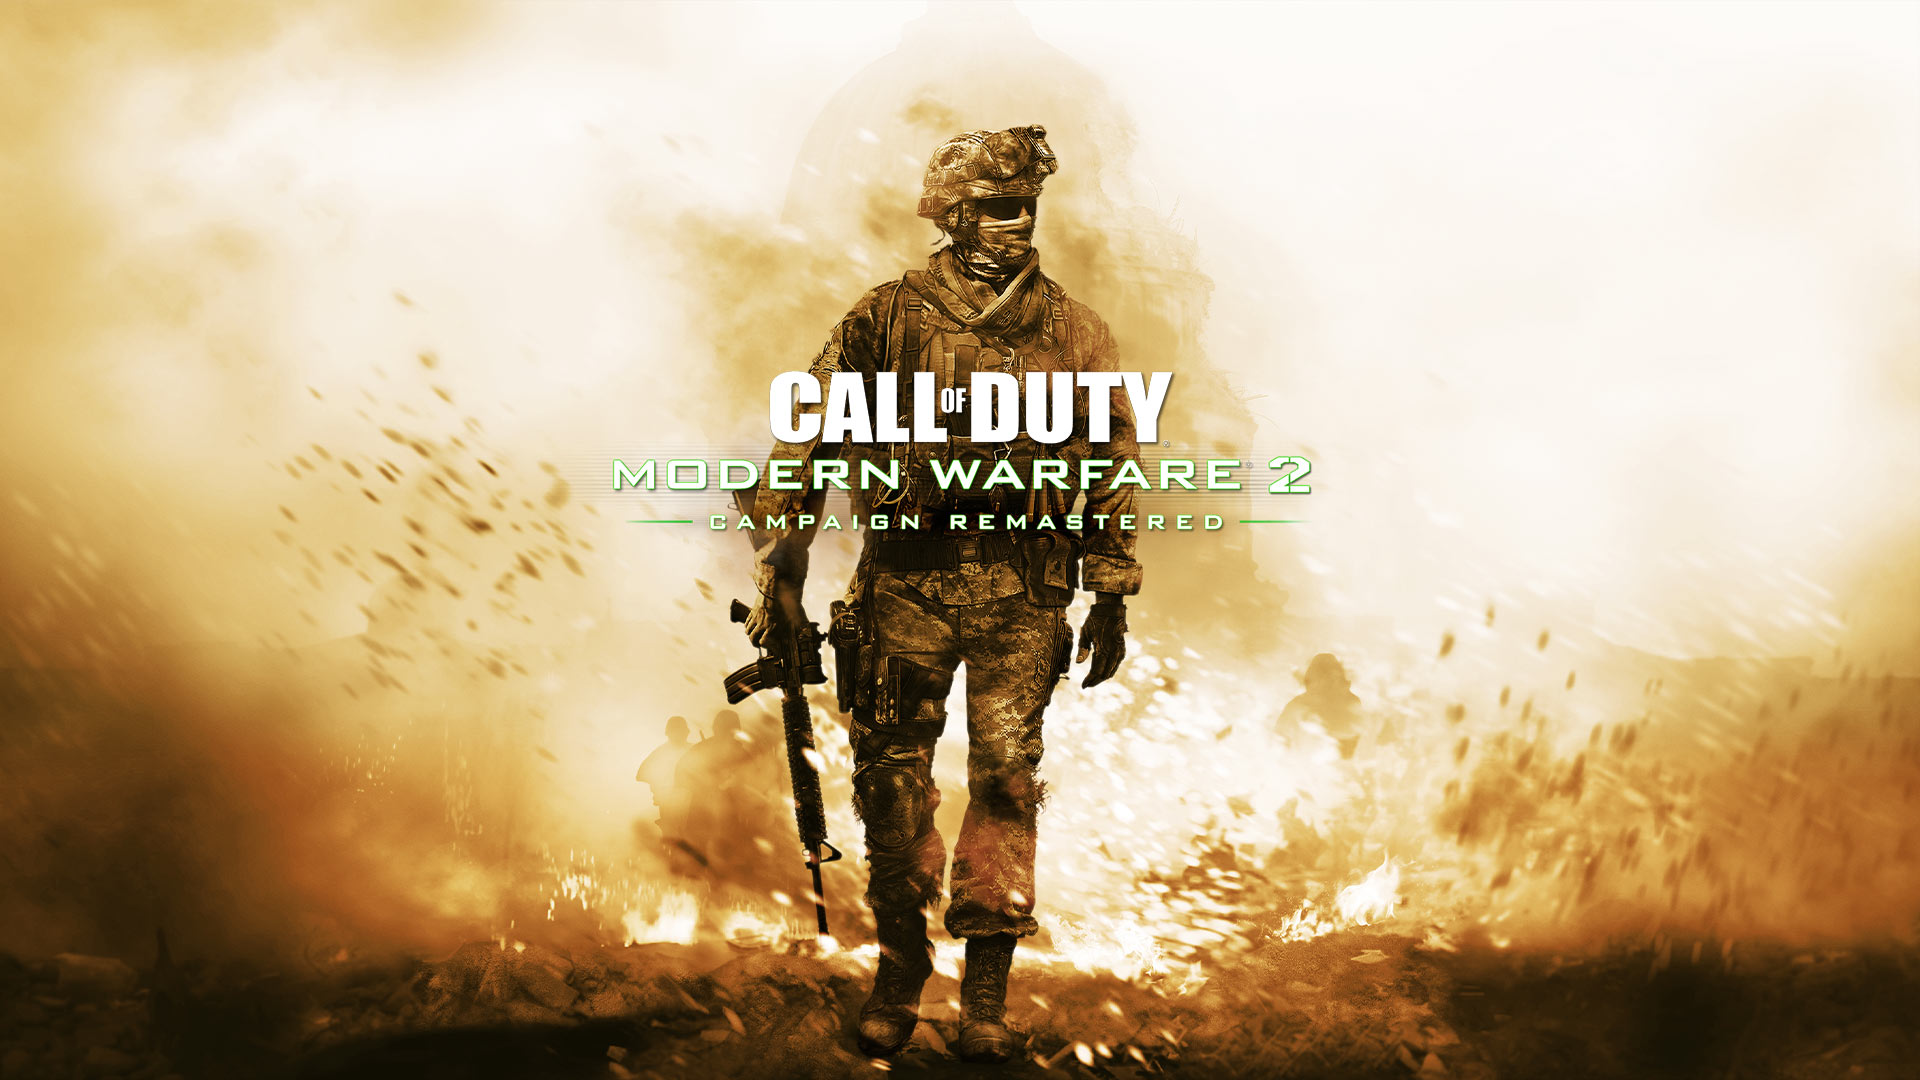 Call of Duty®: Modern Warfare 2 Remastered | Campaign